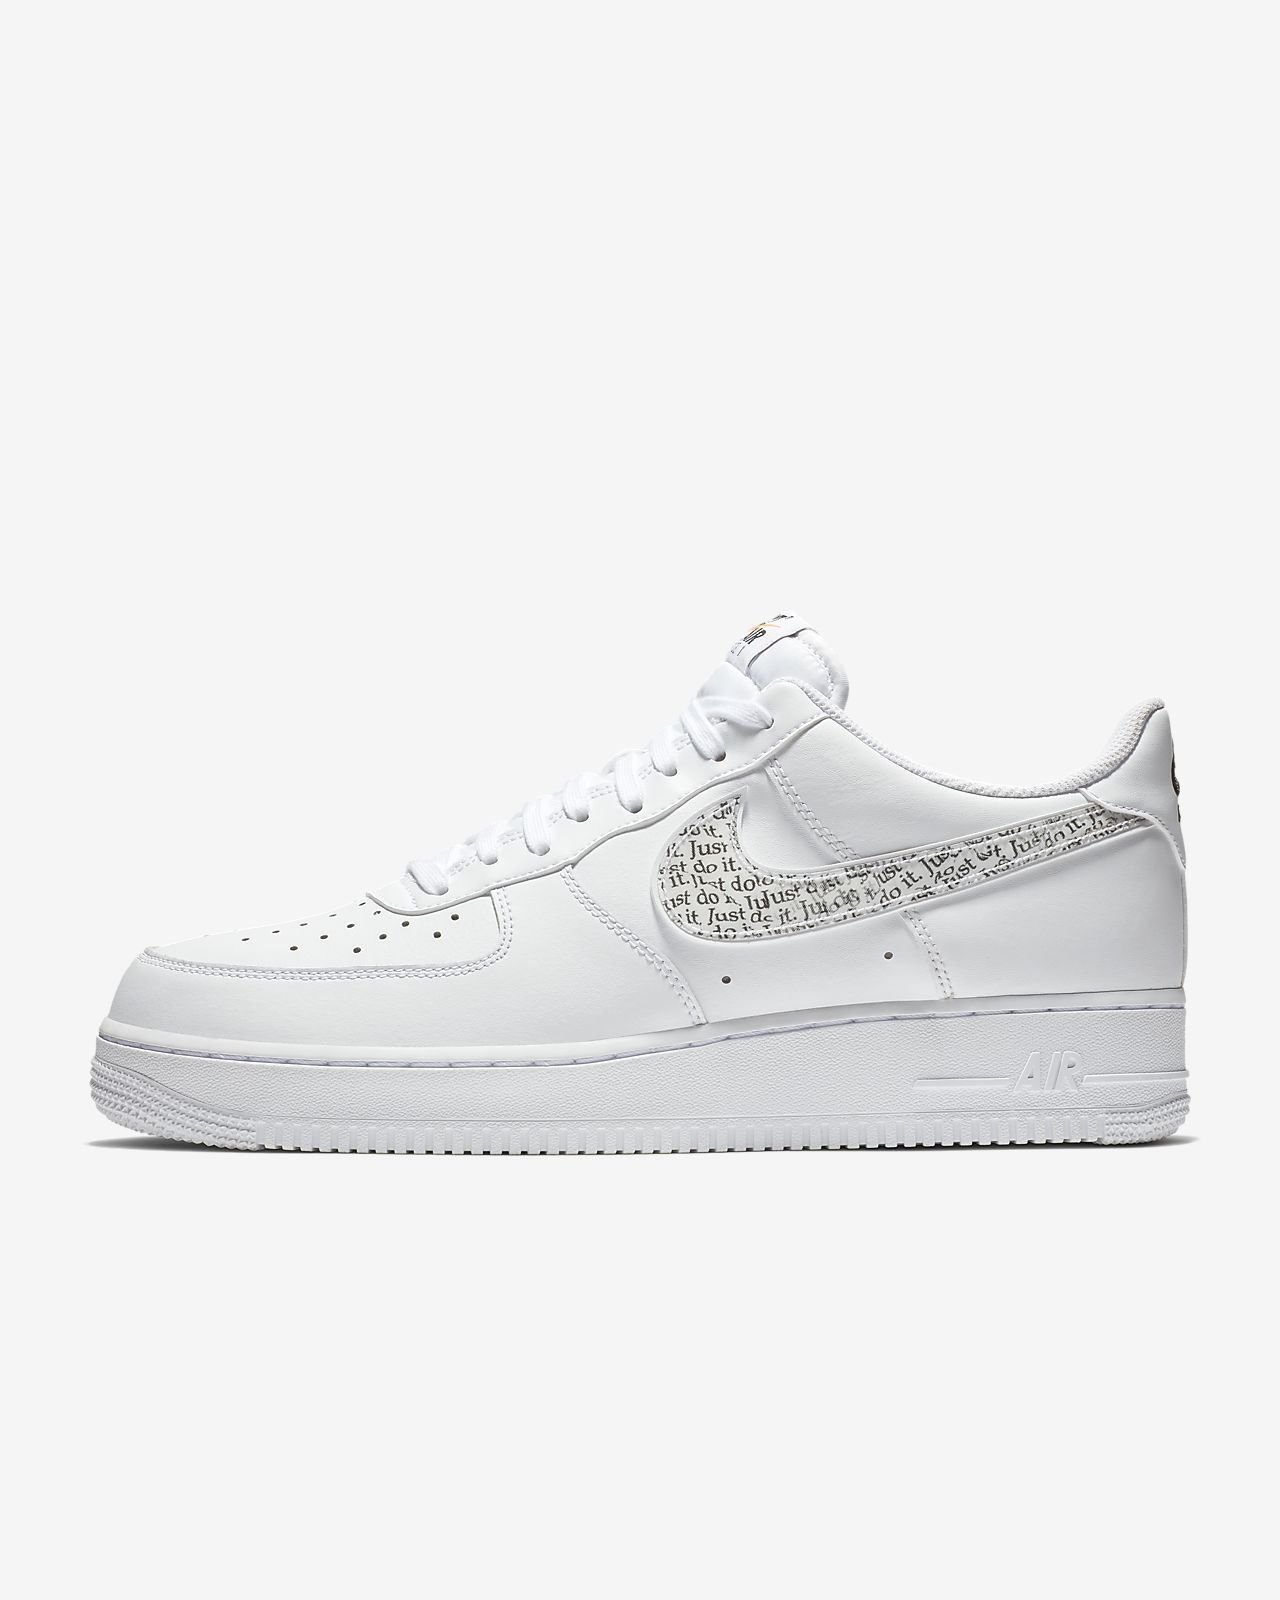 competitive price 8a328 246c1 ... Nike Air Force 1 07 LV8 JDI Leather sko til herre